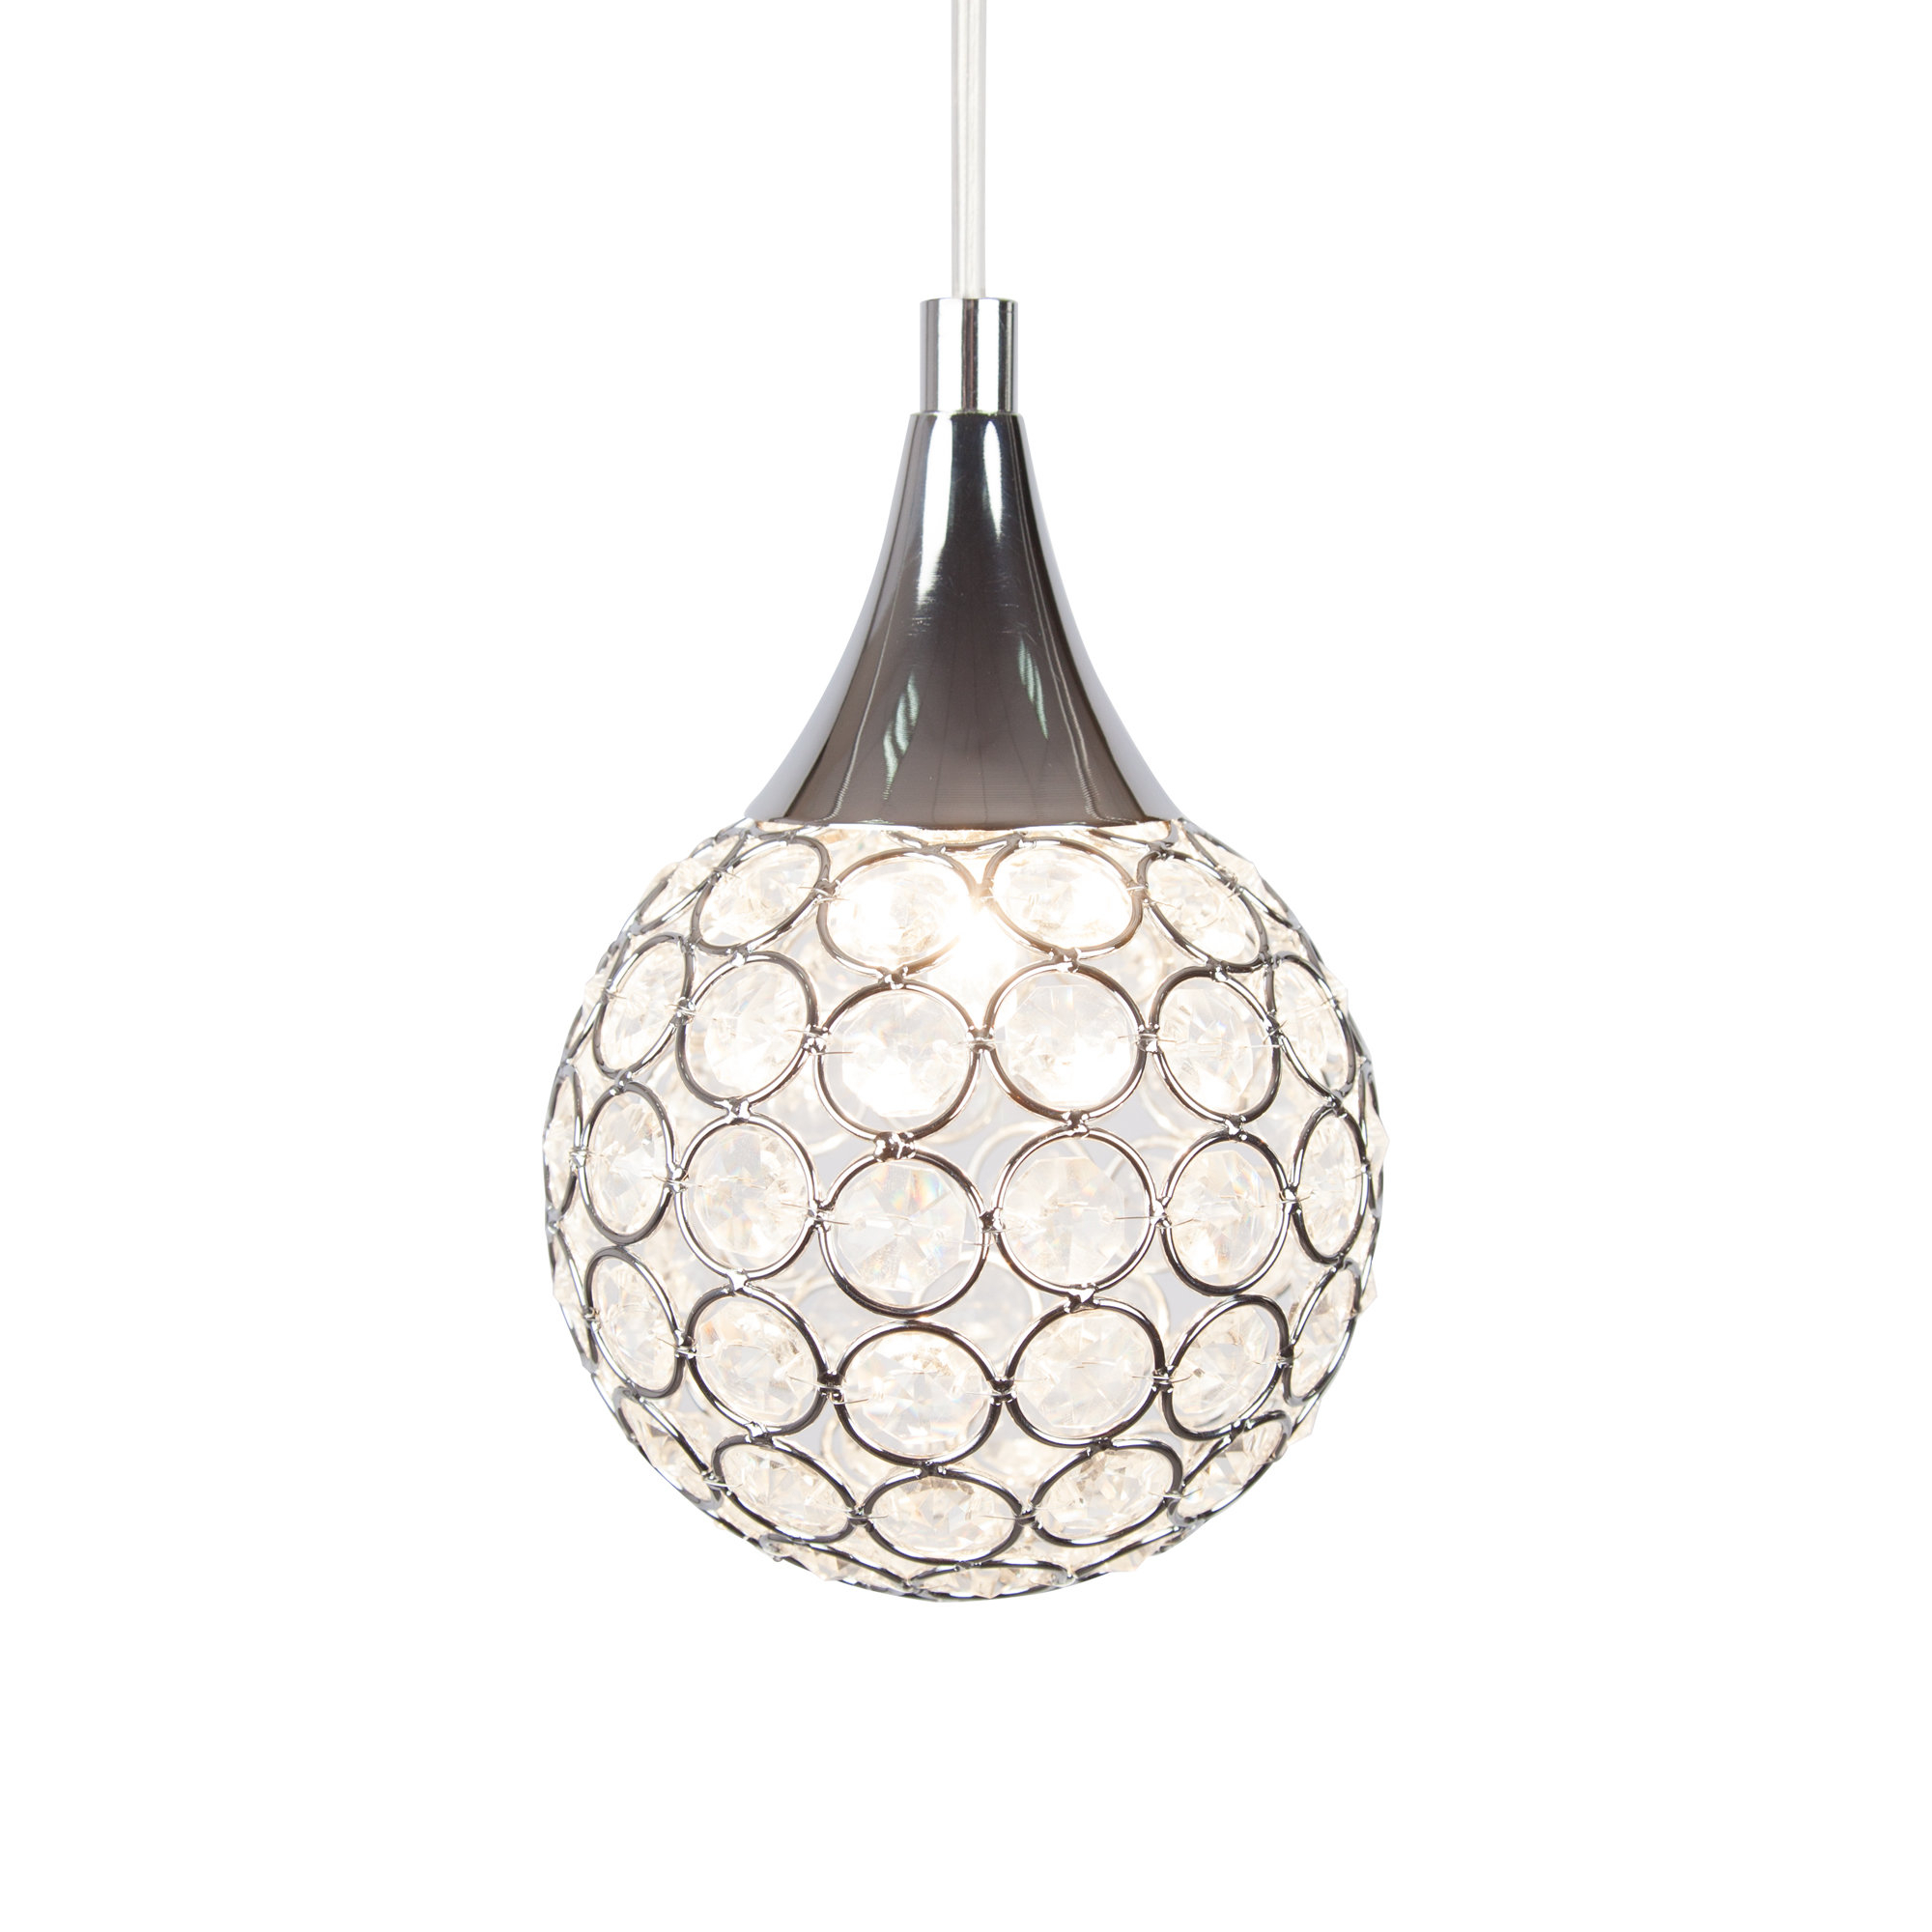 Thea 1 Light Led Globe Pendant Light With Regard To Preferred Devereaux 1 Light Single Globe Pendants (View 19 of 20)